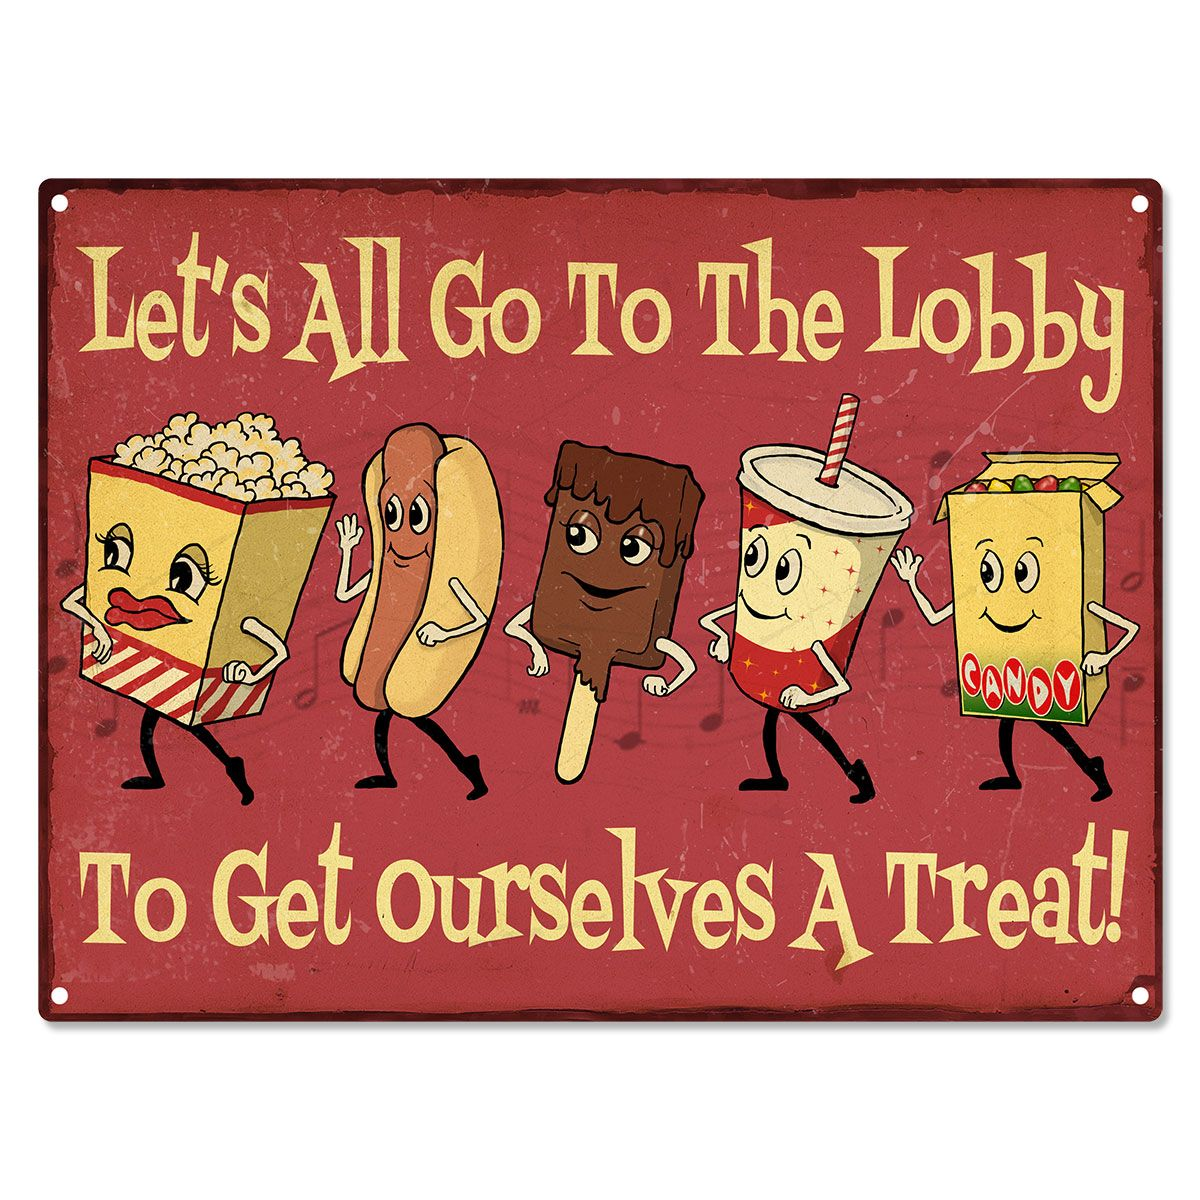 Lets Go to the Lobby Dancing Snacks Home Theater Sign   Movie rooms Retro Home Theater Design on oriental home theater, 3d home theater, gold home theater, leather home theater, tropical home theater, european home theater, pop home theater, black home theater, new wave home theater, comfy home theater, mexican home theater, mid century modern home theater, messy home theater, ultra modern home theater, classy home theater, 70s home theater, anime home theater, old home theater, 1990s home theater, horror home theater,